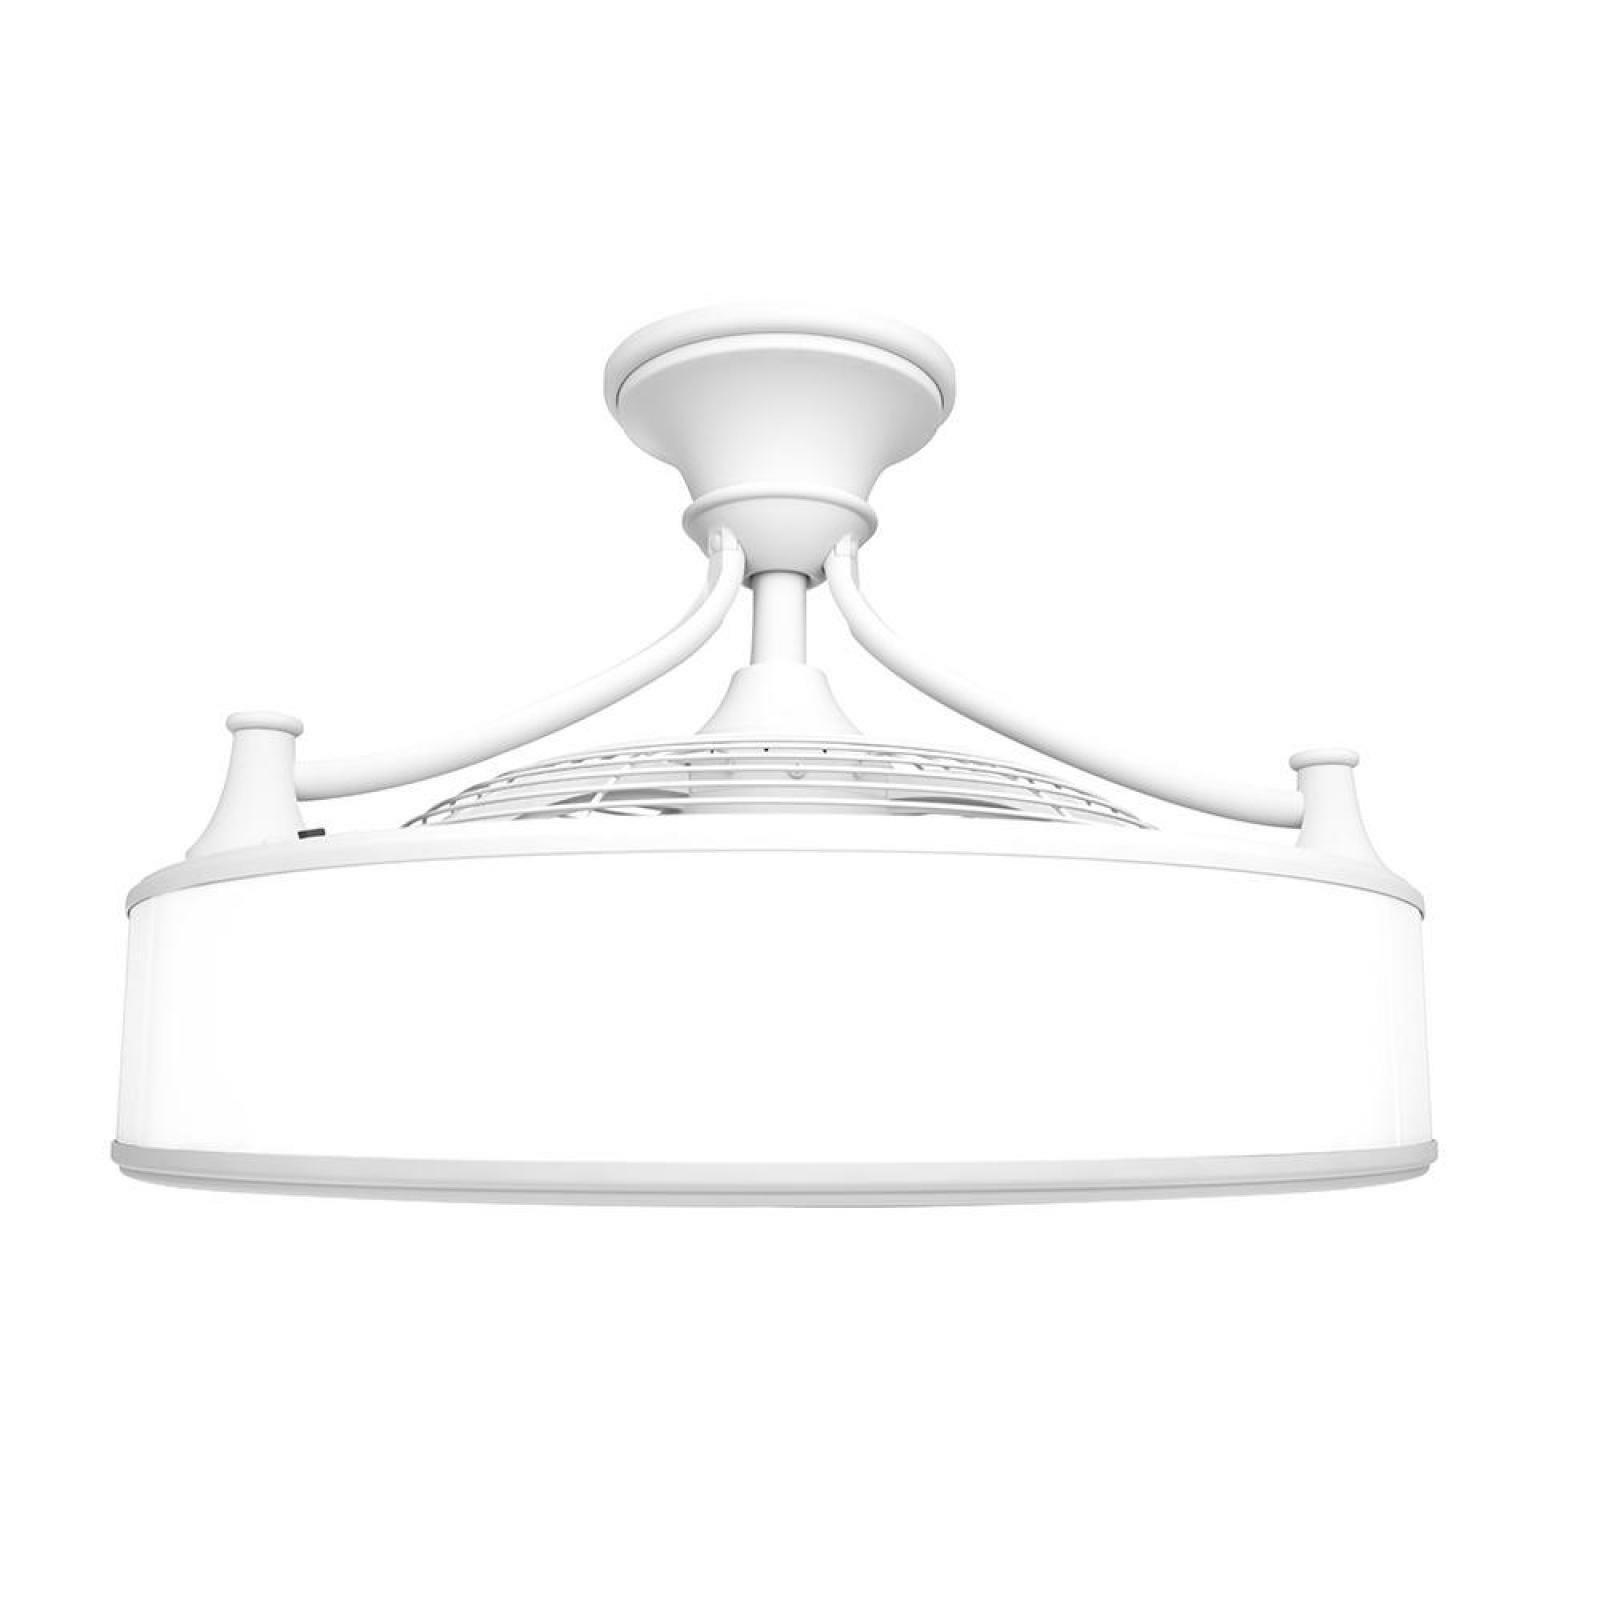 Indoor Outdoor Ceiling Fan White Remote